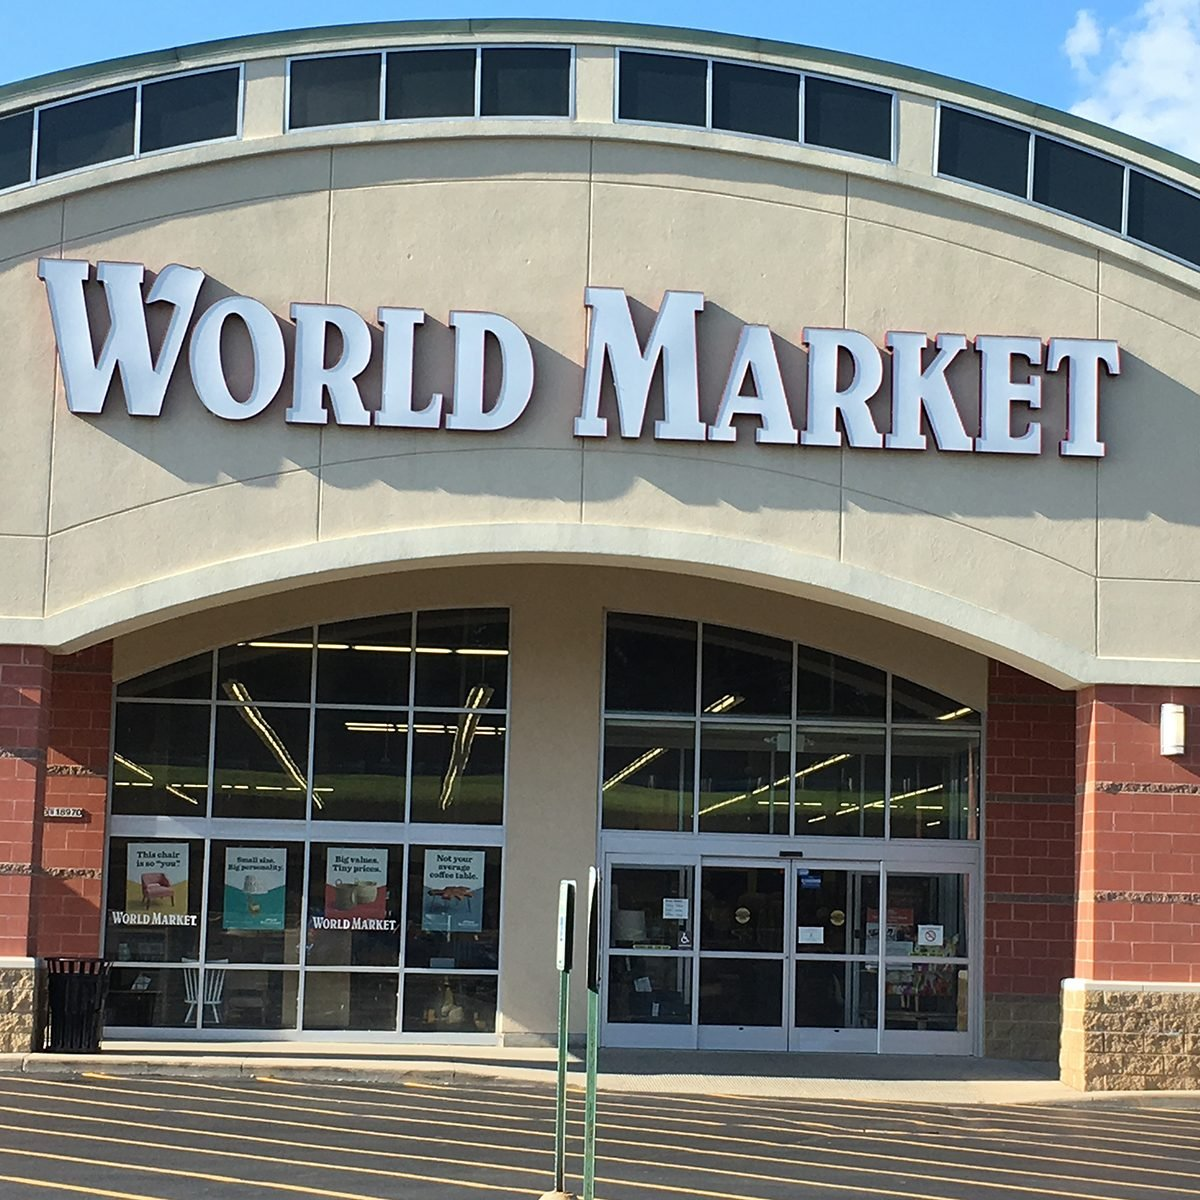 Market Home: The 11 Foods You Should Buy At World Market